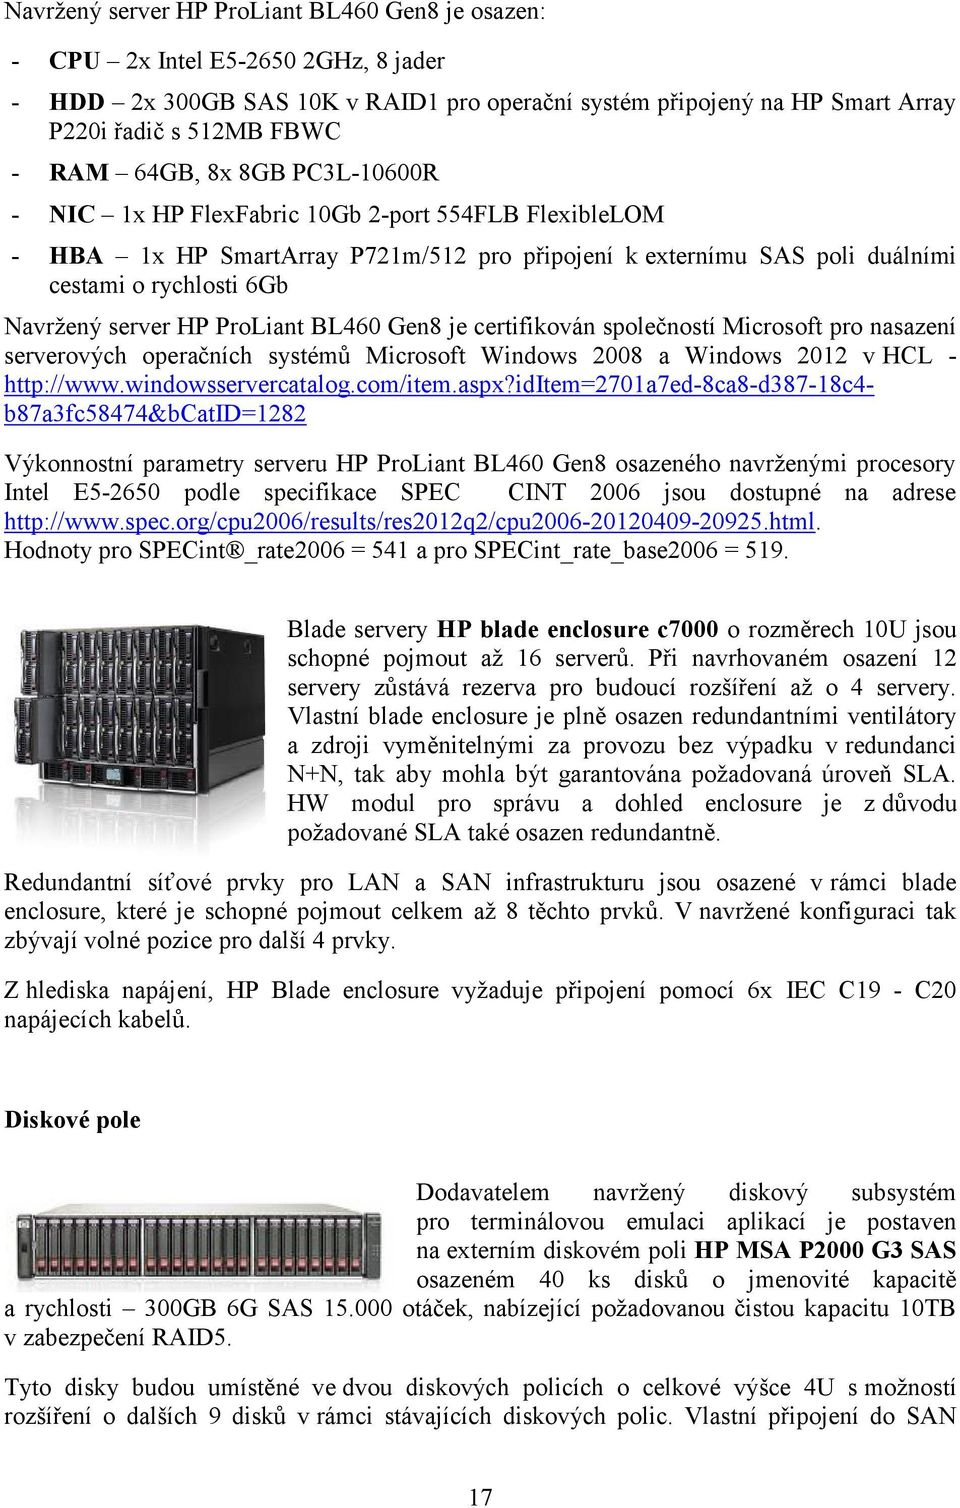 ProLiant BL460 Gen8 je certifikován společností Microsoft pro nasazení serverových operačních systémů Microsoft Windows 2008 a Windows 2012 v HCL - http://www.windowsservercatalog.com/item.aspx?